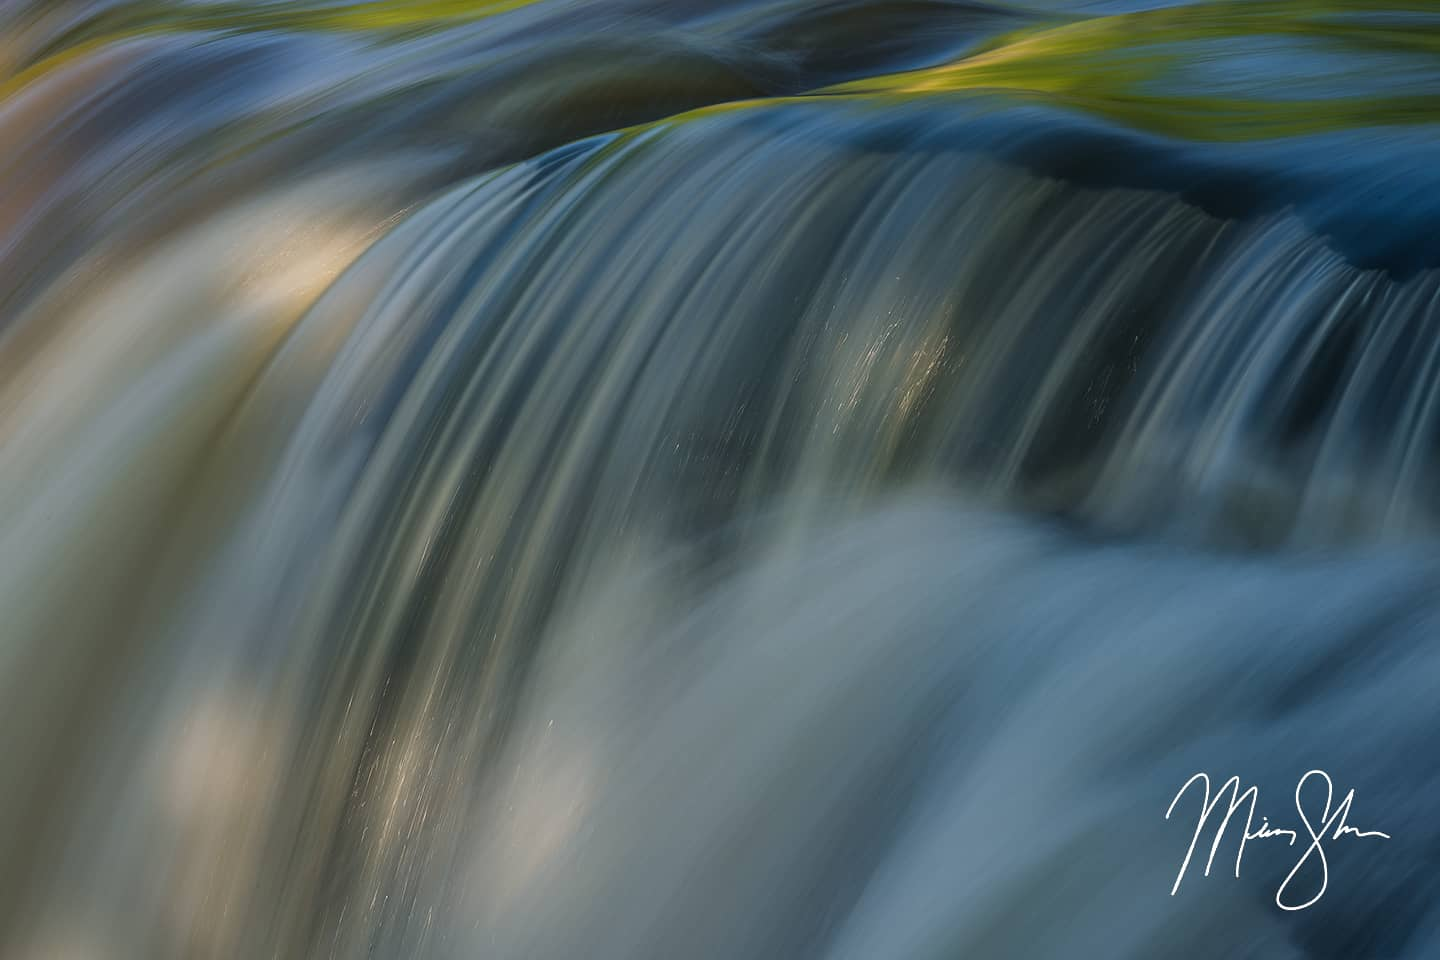 Open edition fine art print of Curves of Elk Falls from Mickey Shannon Photography. Location: Elk Falls, Kansas